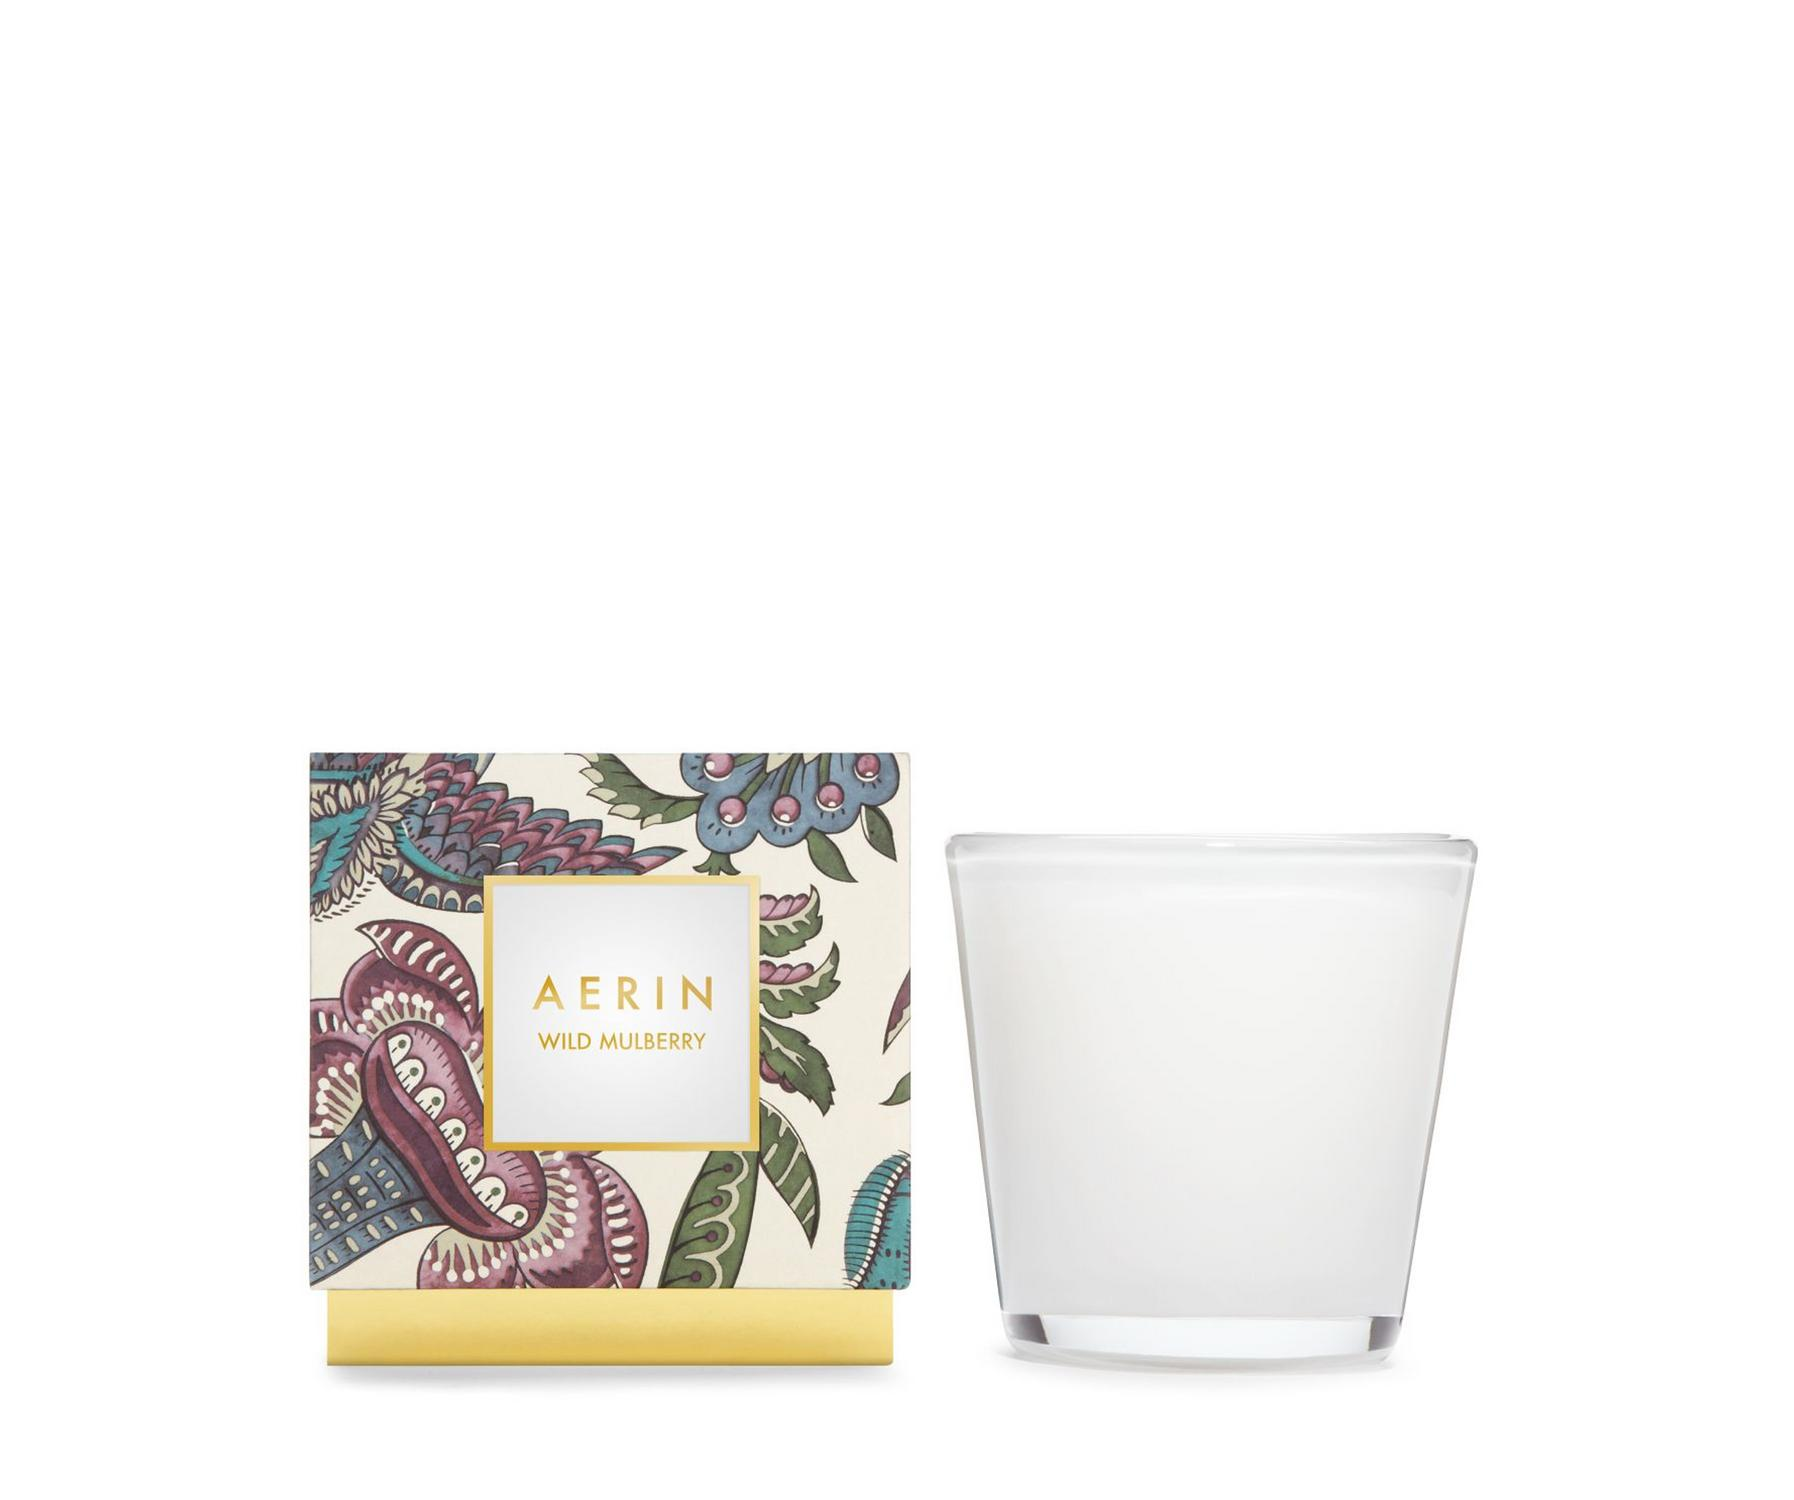 AERIN Wild Mulberry  (when you open the box you'll understand why...it's an aromatic dessert)